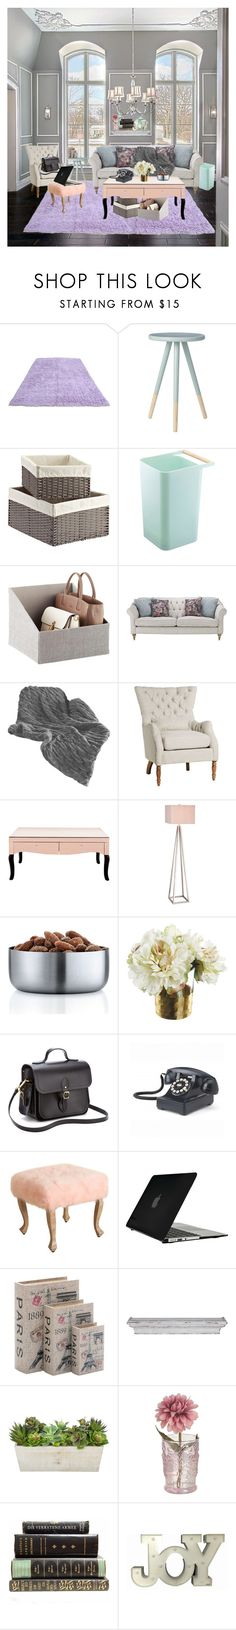 """""""Untitled #132"""" by cazziez ❤ liked on Polyvore featuring interior, interiors, interior design, home, home decor, interior decorating, Yamazaki, JAlexander, blomus and The Cambridge Satchel Company"""